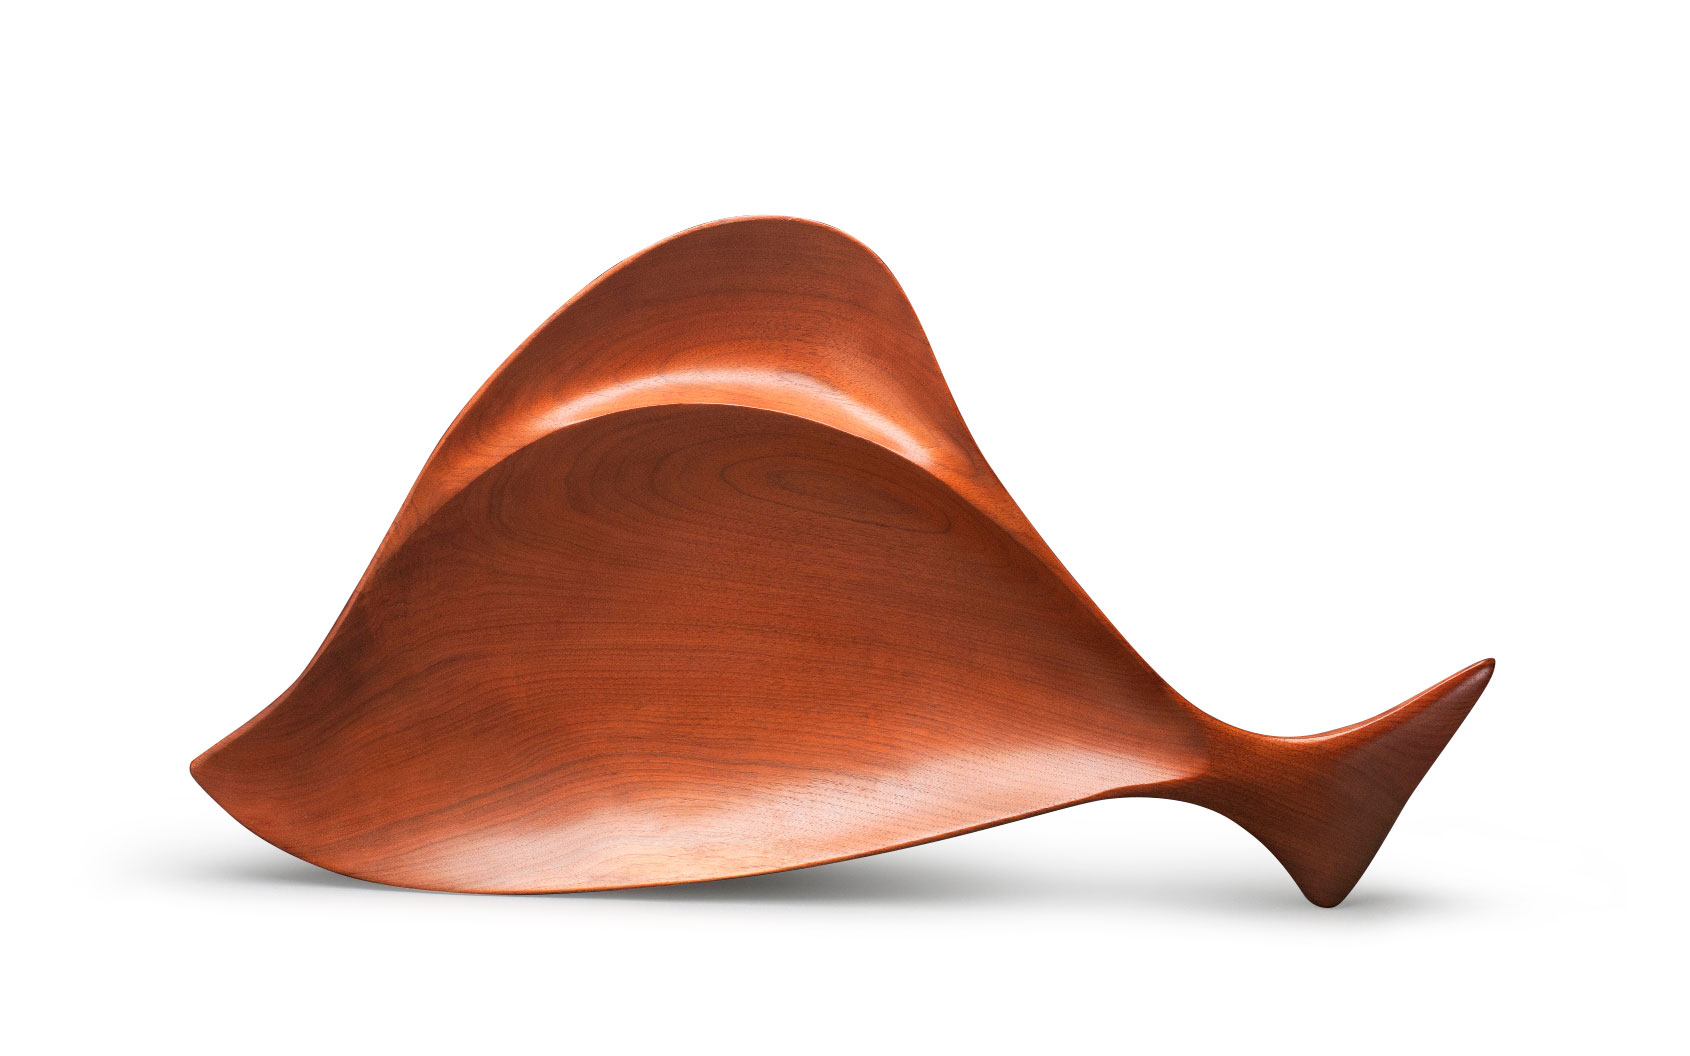 Two-Part Fish-Shaped Bowl